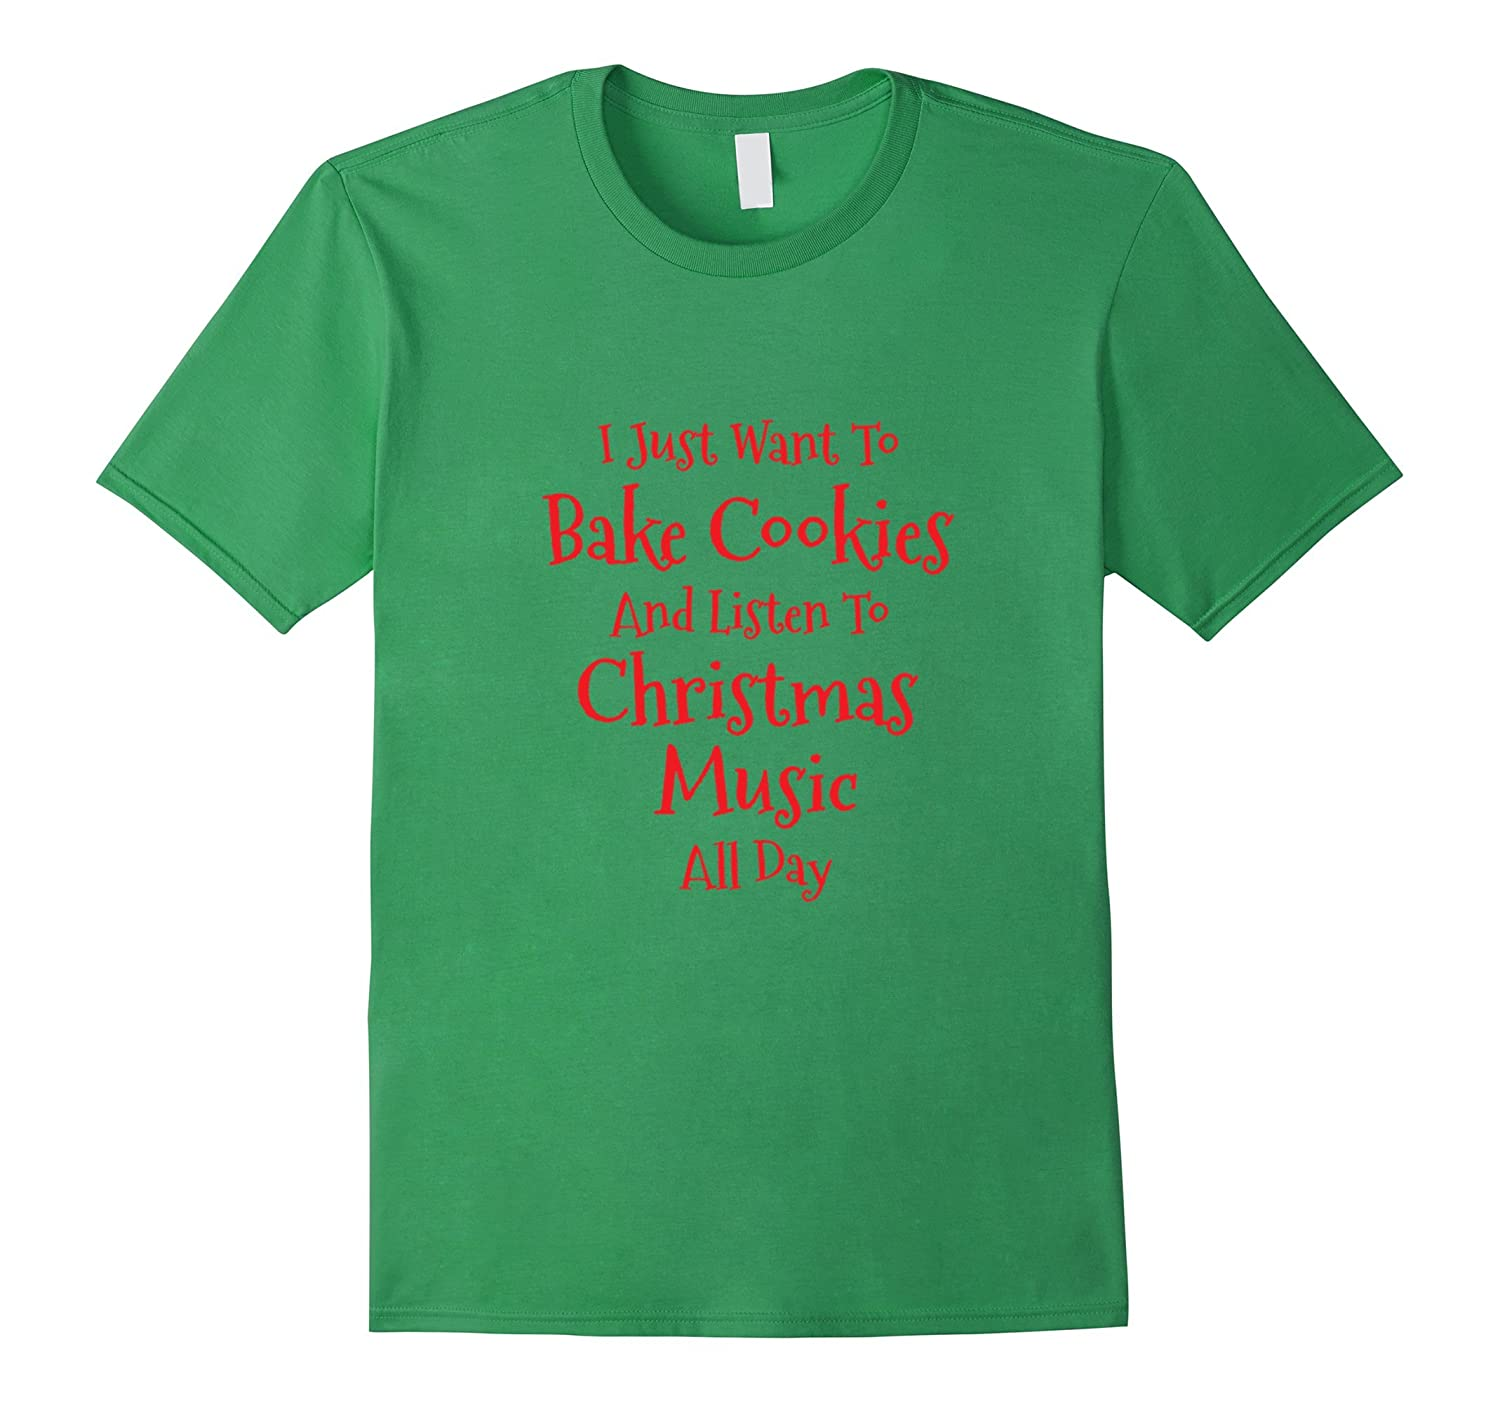 Bake Cookies And Listen To Christmas Music T-Shirt